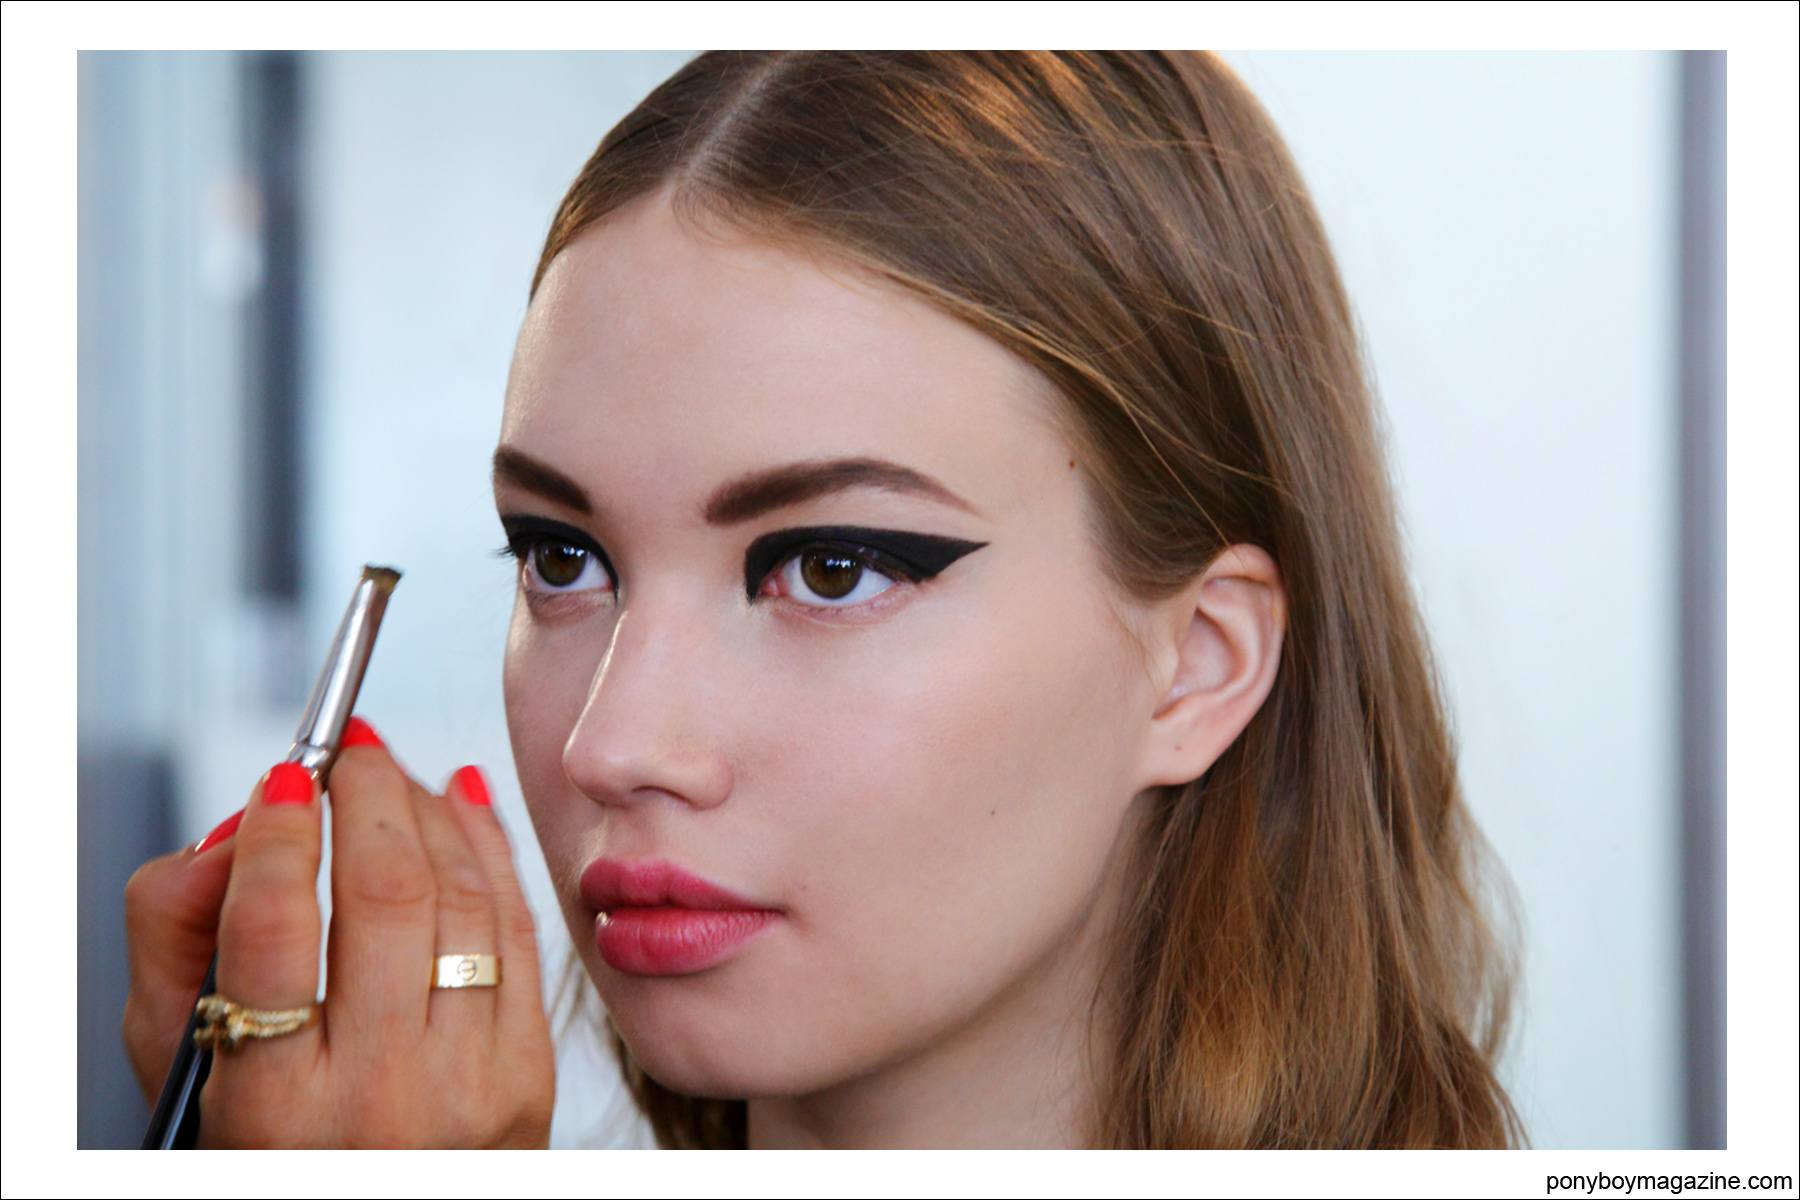 A model backstage at Cushnie et Ochs S/S15 getting her eye makeup applied. Photo by Alexander Thompson at Milk Studios, for Ponyboy Magazine.